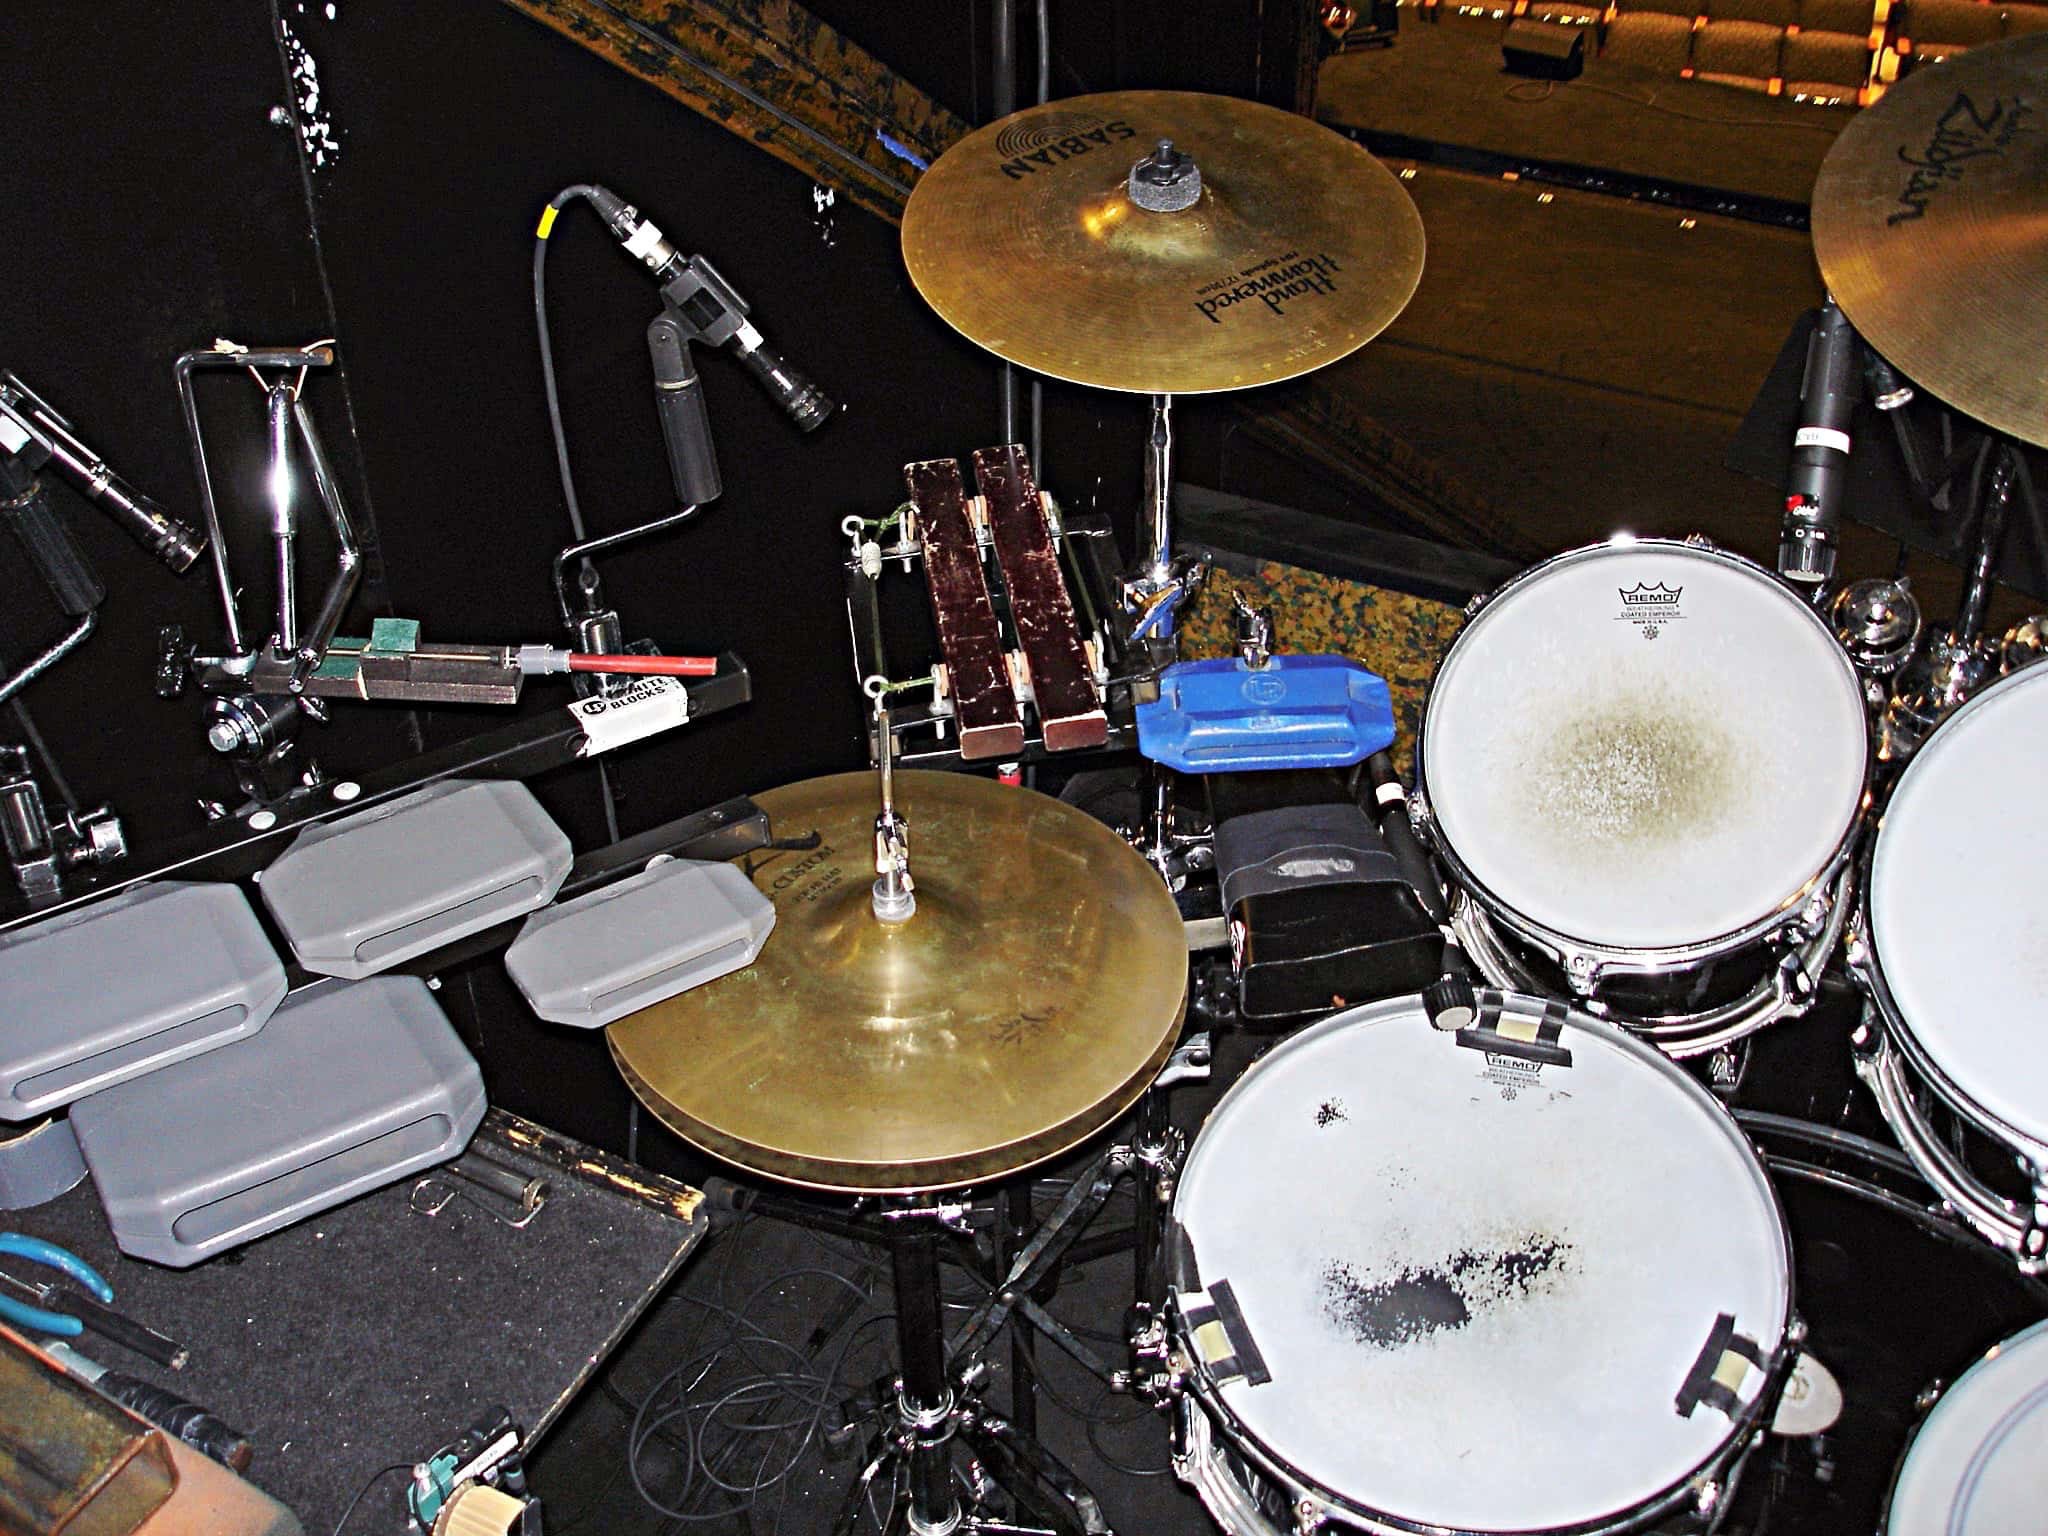 Cubby O'Briens setup for the National Tour of Chicago at the Majestic Theatre in San Antonio, Texas.